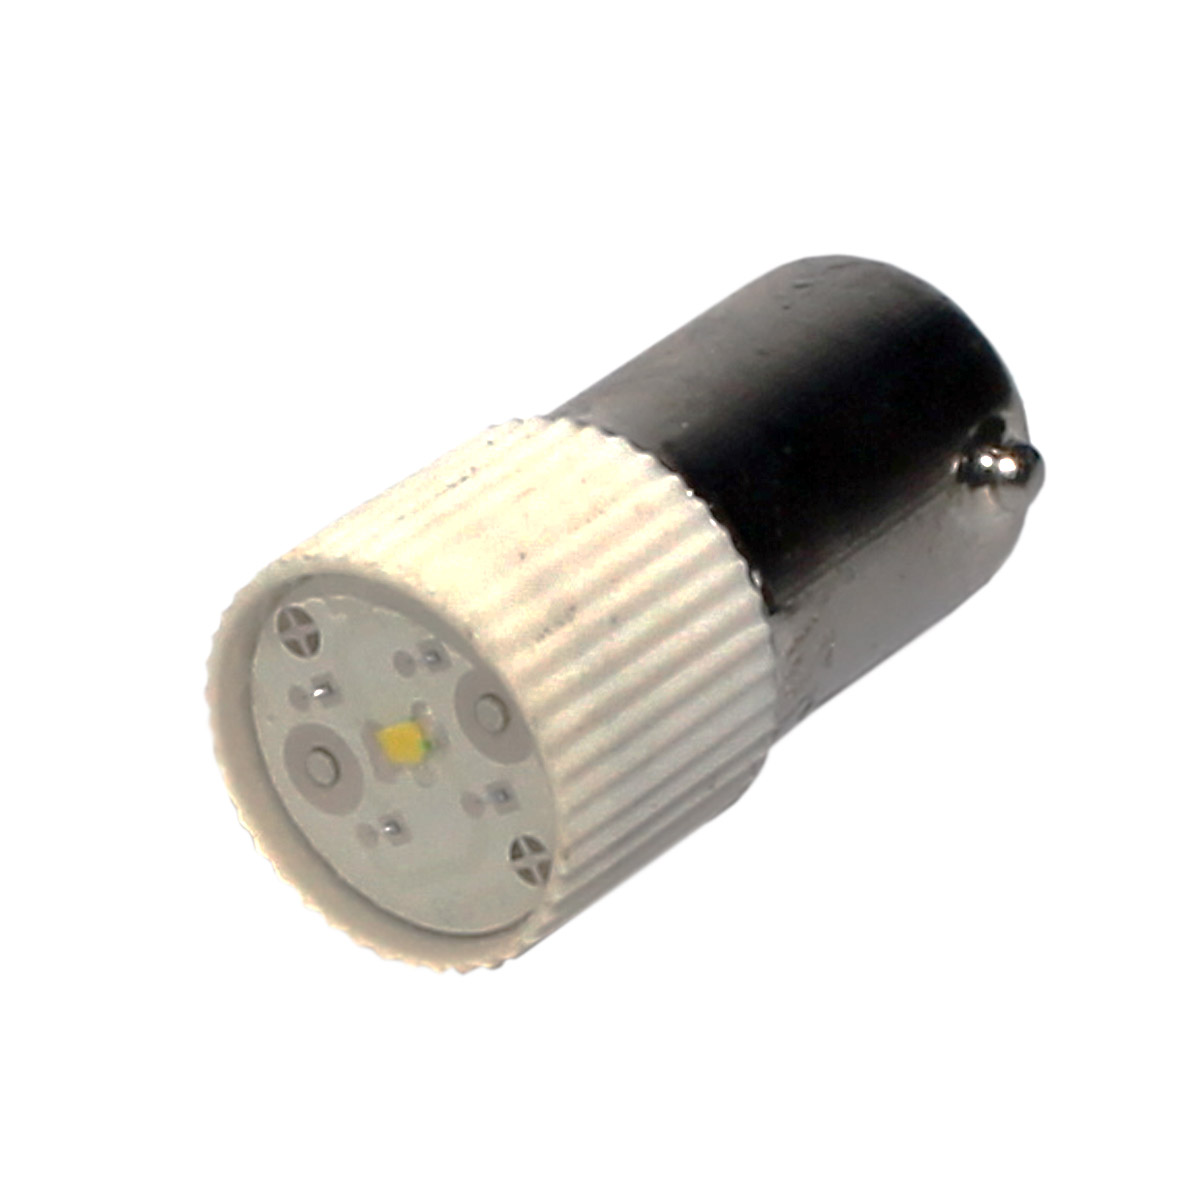 L mpada led 220v ba9s branca eletrope as comercial for Lampade led 220v